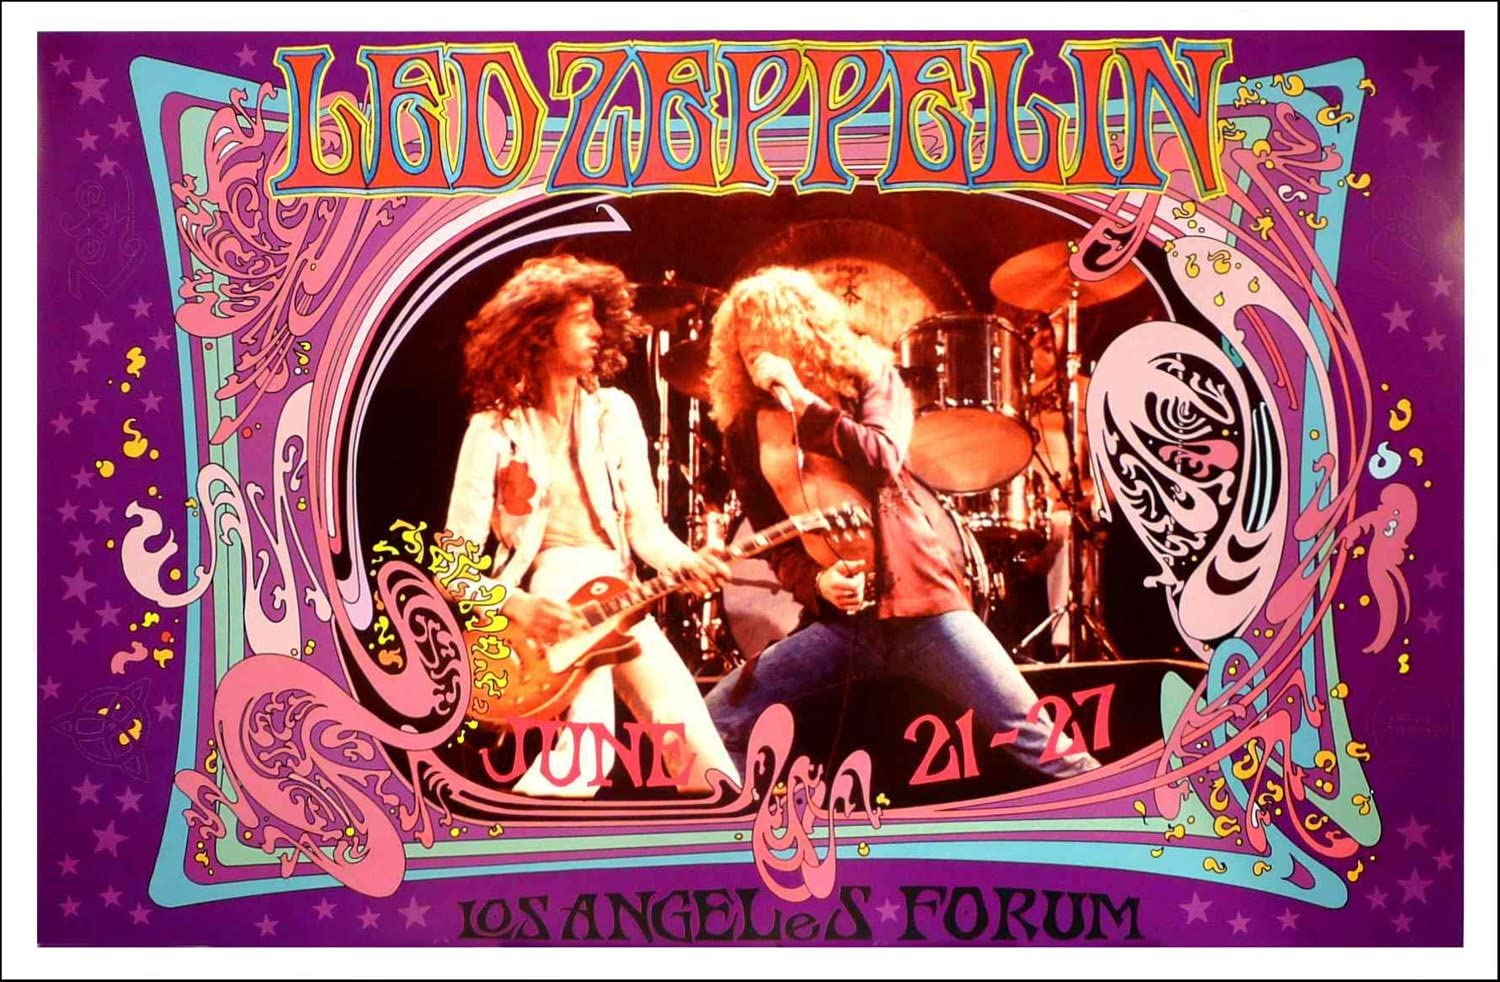 BOB MASSE LED ZEPPELIN FORUM ROCK CONCERT POSTER SIGNED BY ARTIST